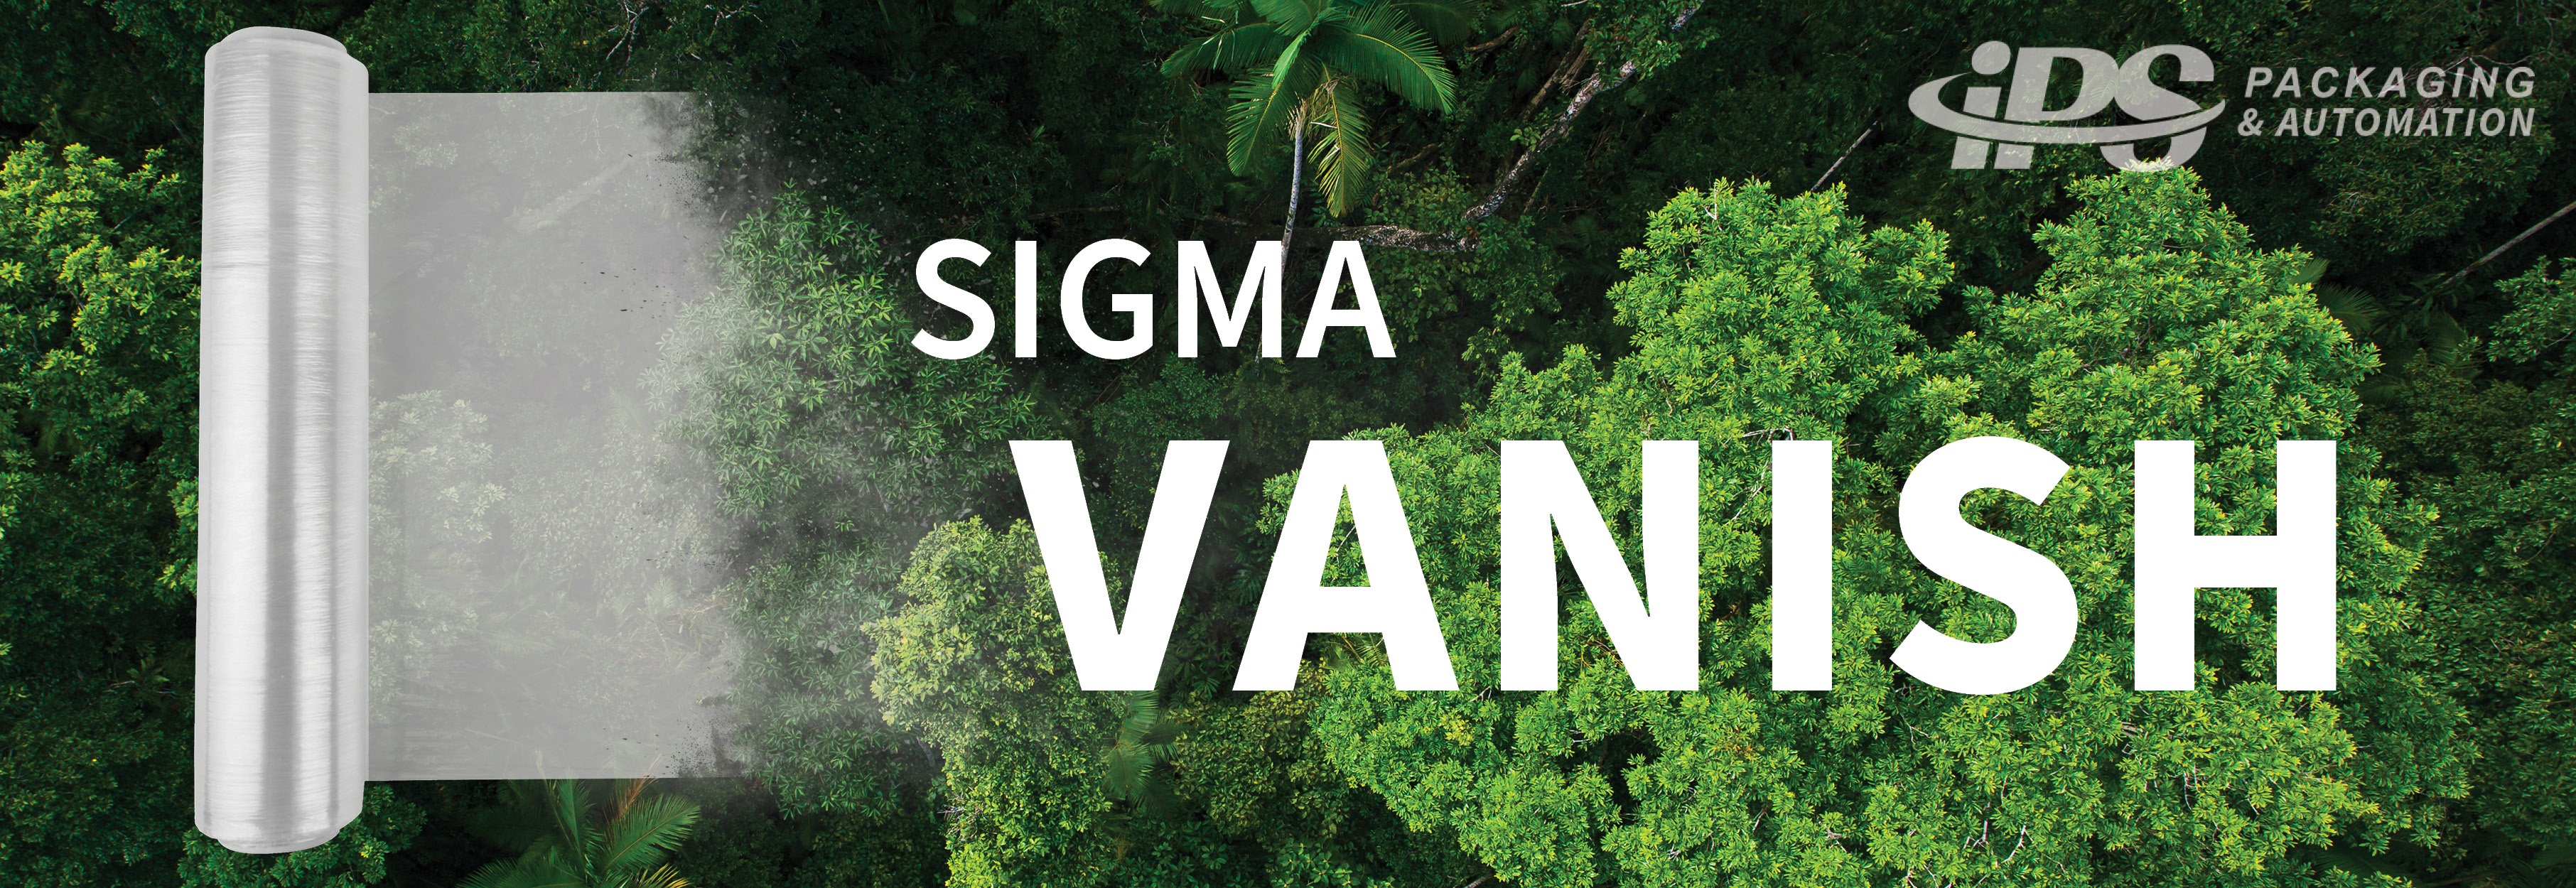 Press Release: IPS Packaging & Automation Introduces Sigma Vanish Biodegradable Stretch Film